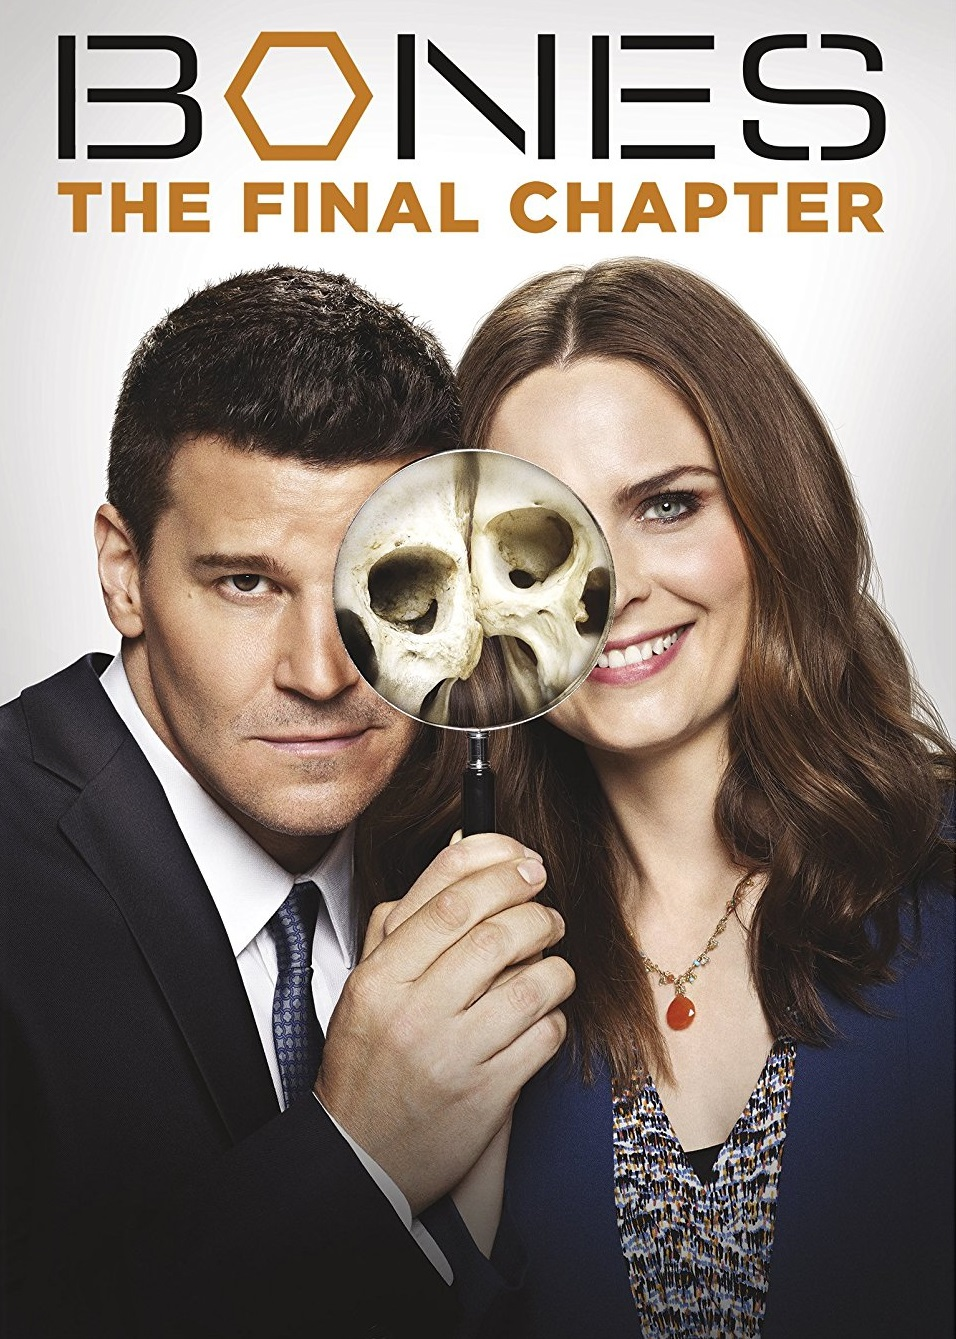 Bones [Season 12] [The Final Chapter] [2017] [DVDR] [NTSC] [Latino]